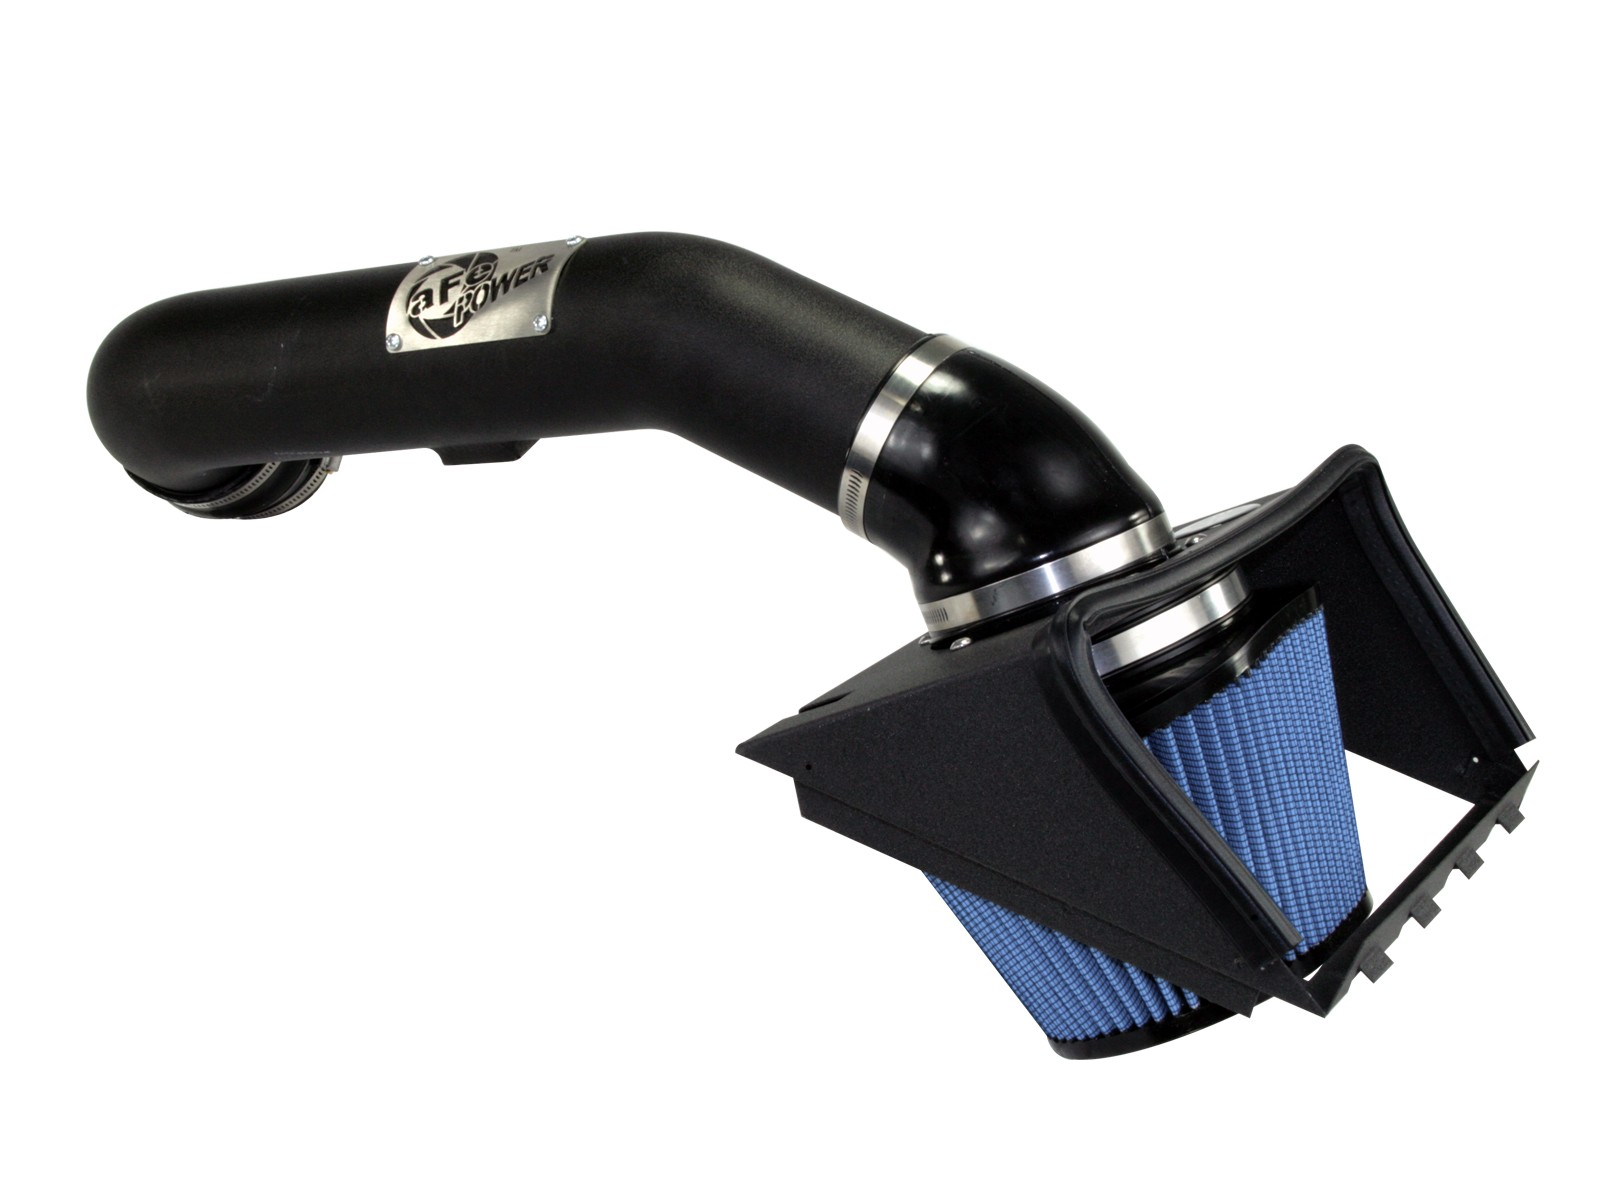 aFe POWER 54-11962-1B Magnum FORCE Stage-2 Pro 5R Cold Air Intake System